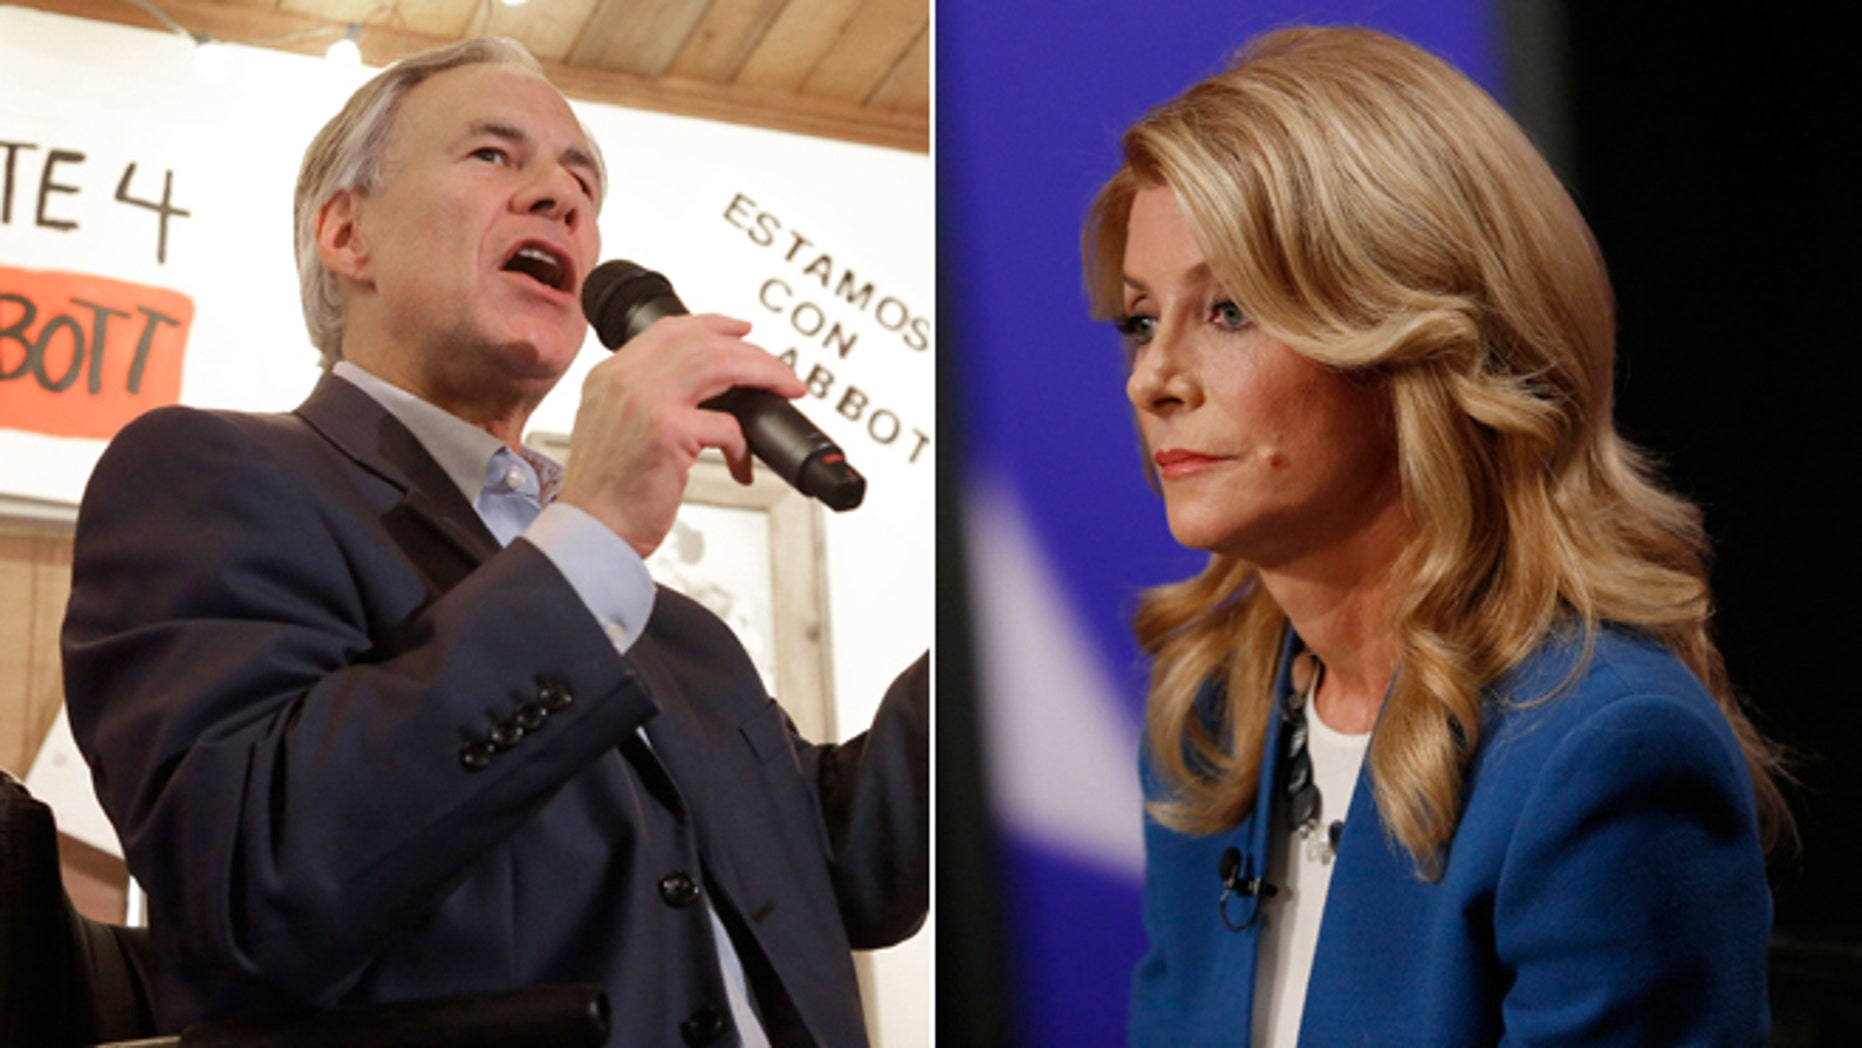 In this Tuesday, Oct. 14, 2014 photo, Texas Republican gubernatorial candidate Greg Abbott in Houston and Texas State Senator Wendy Davis, Democratic Gubernatorial candidate, in Dallas on Tuesday Sept. 30, 2014.